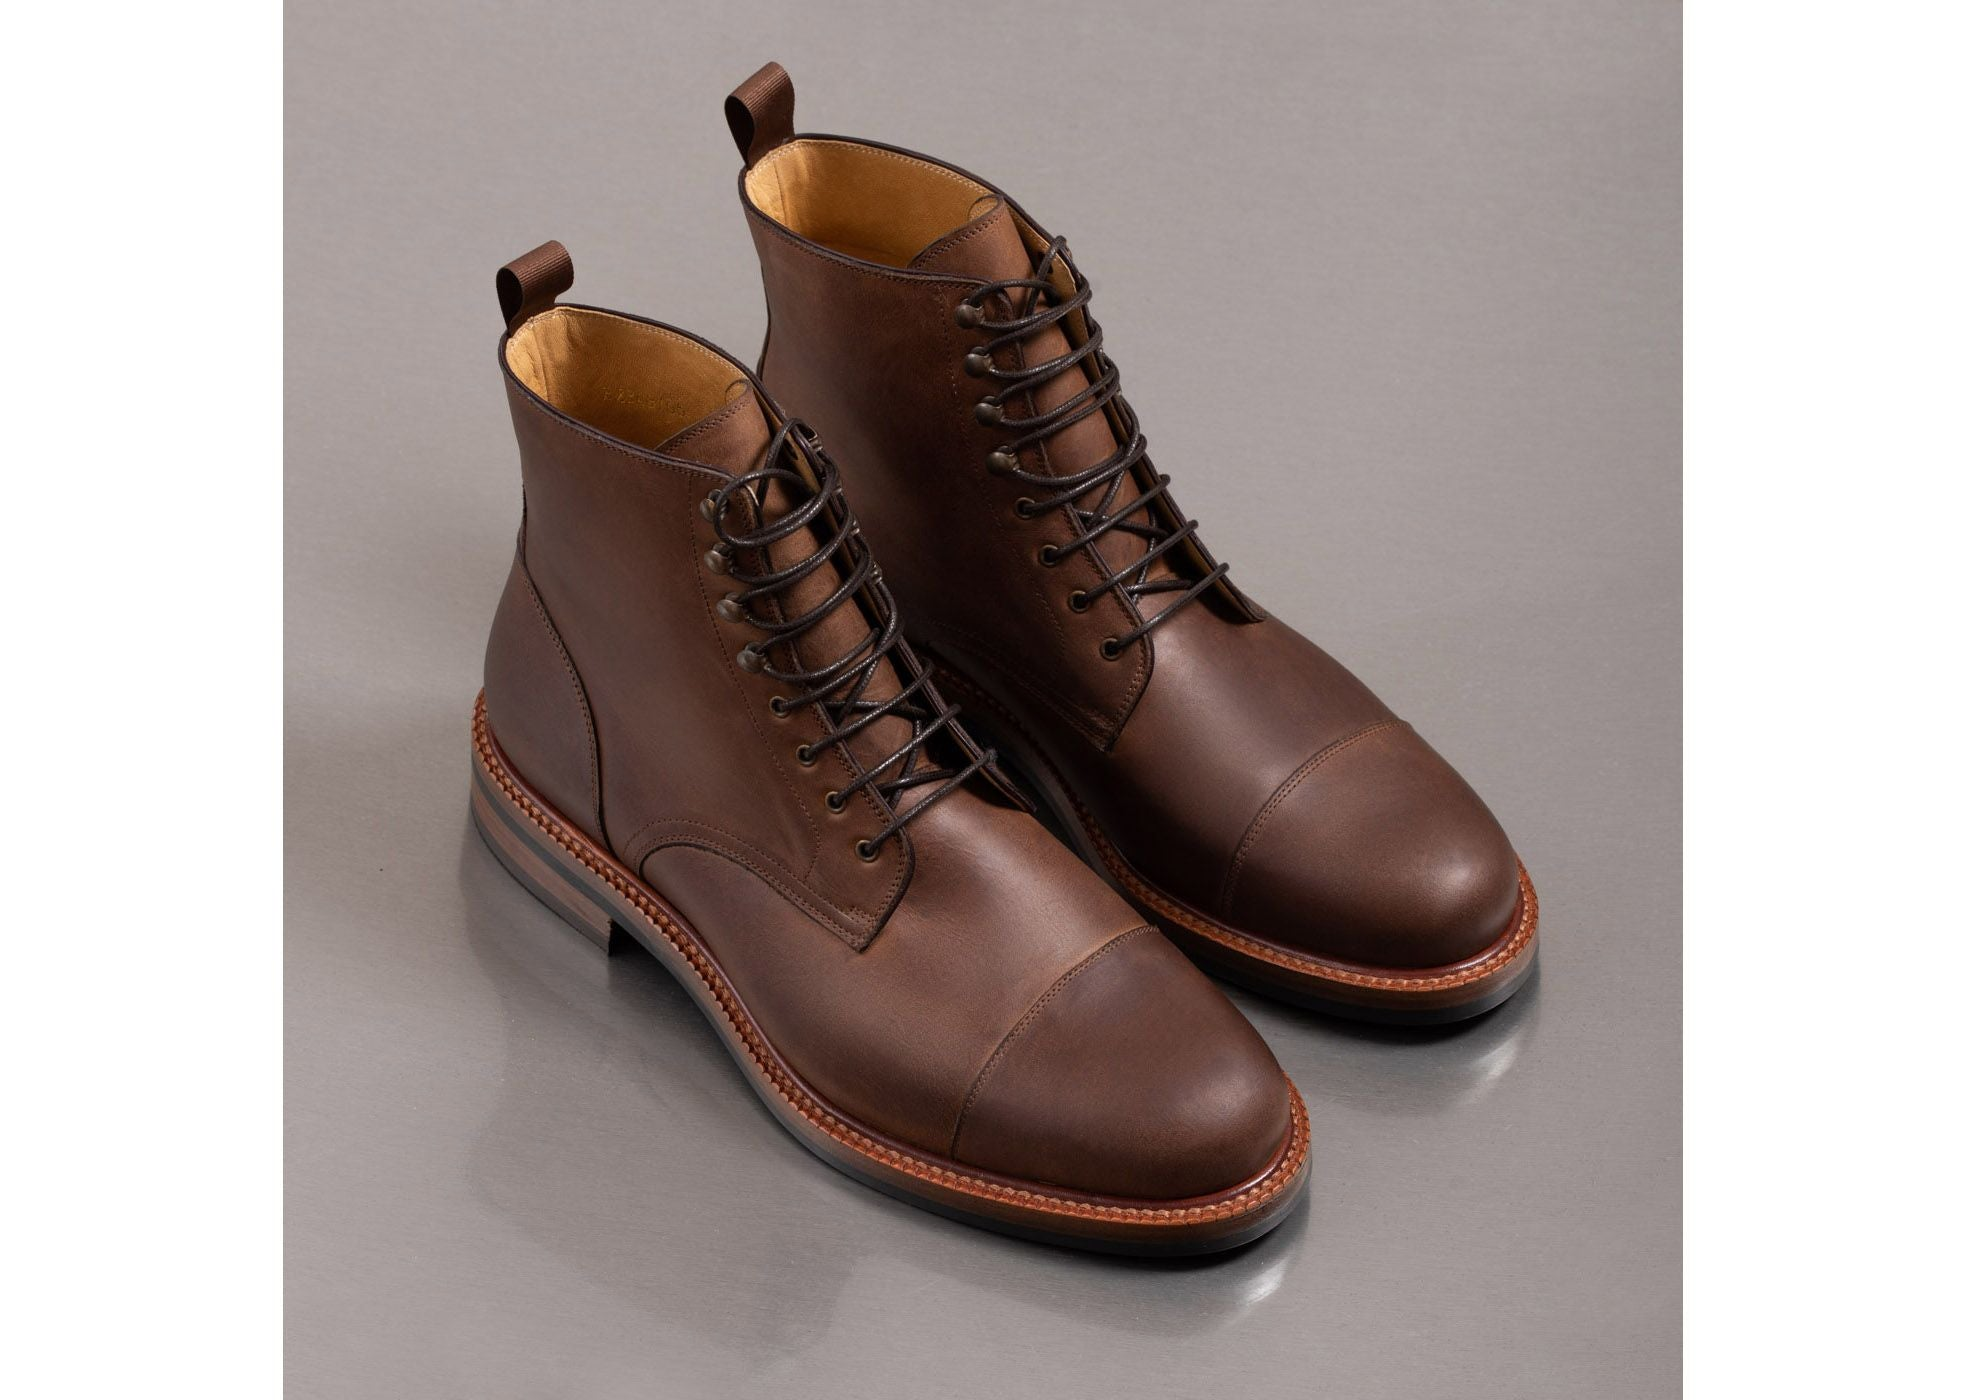 beckett simonon dowler boots pull up leather